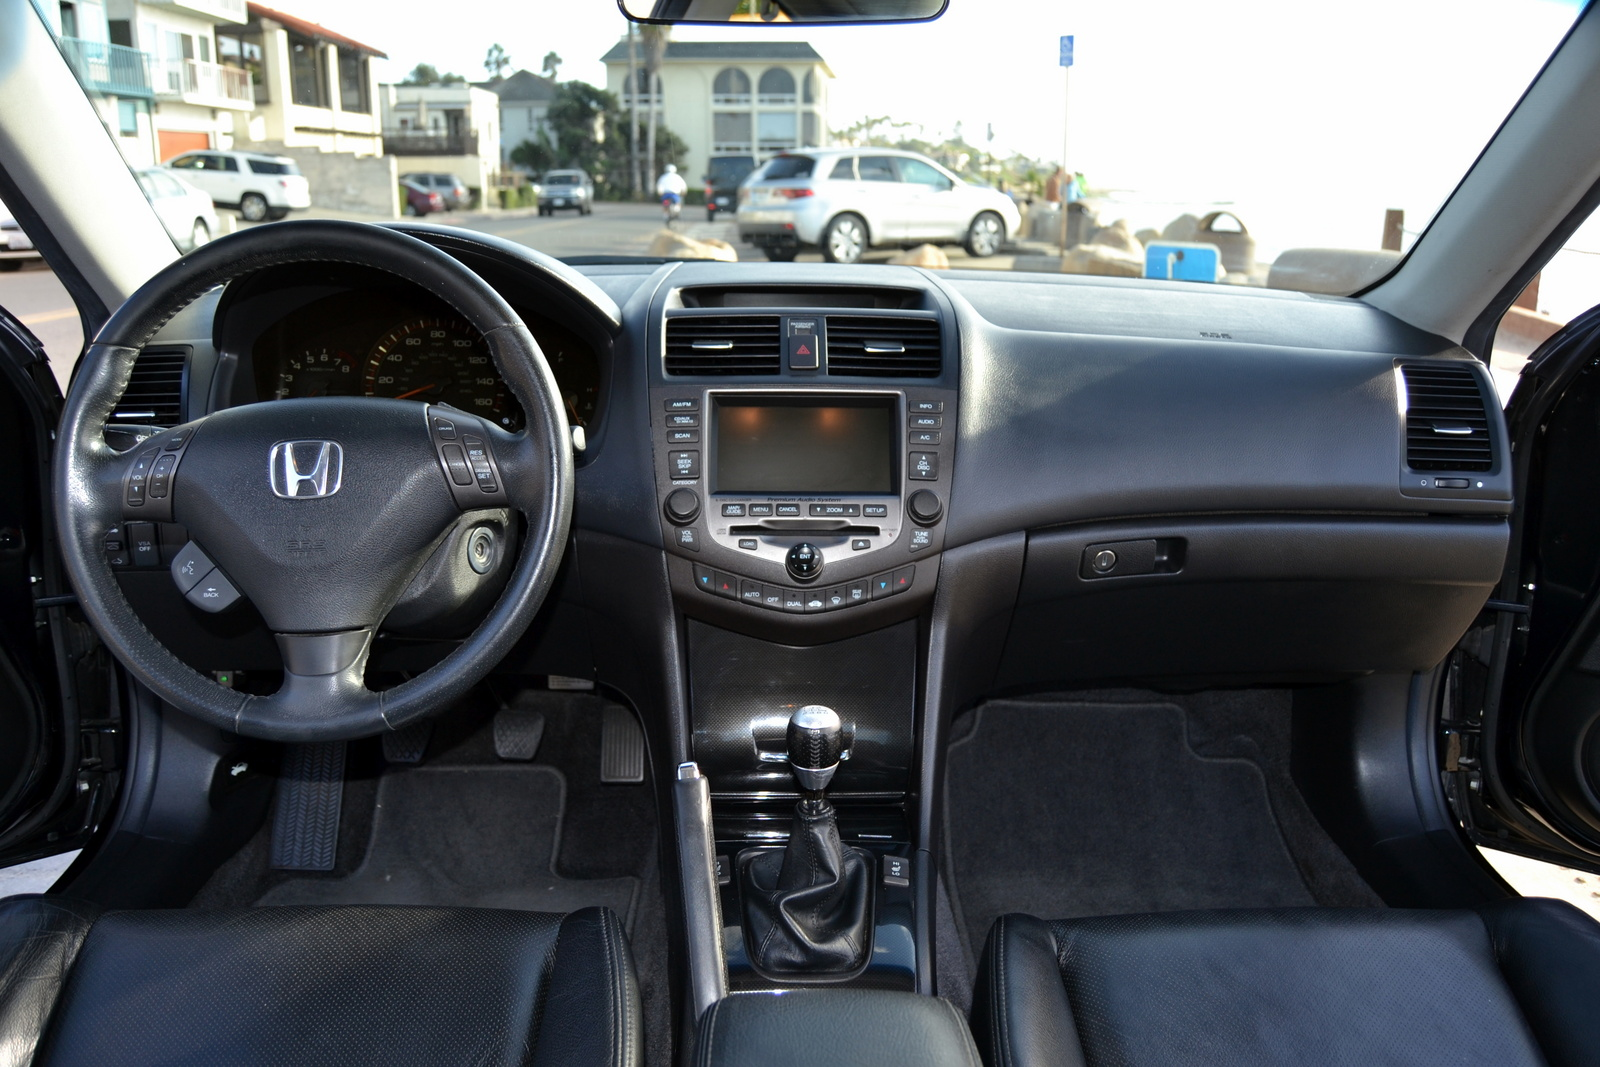 Honda Accord Coupe 2007 Interior Images & Pictures - Becuo